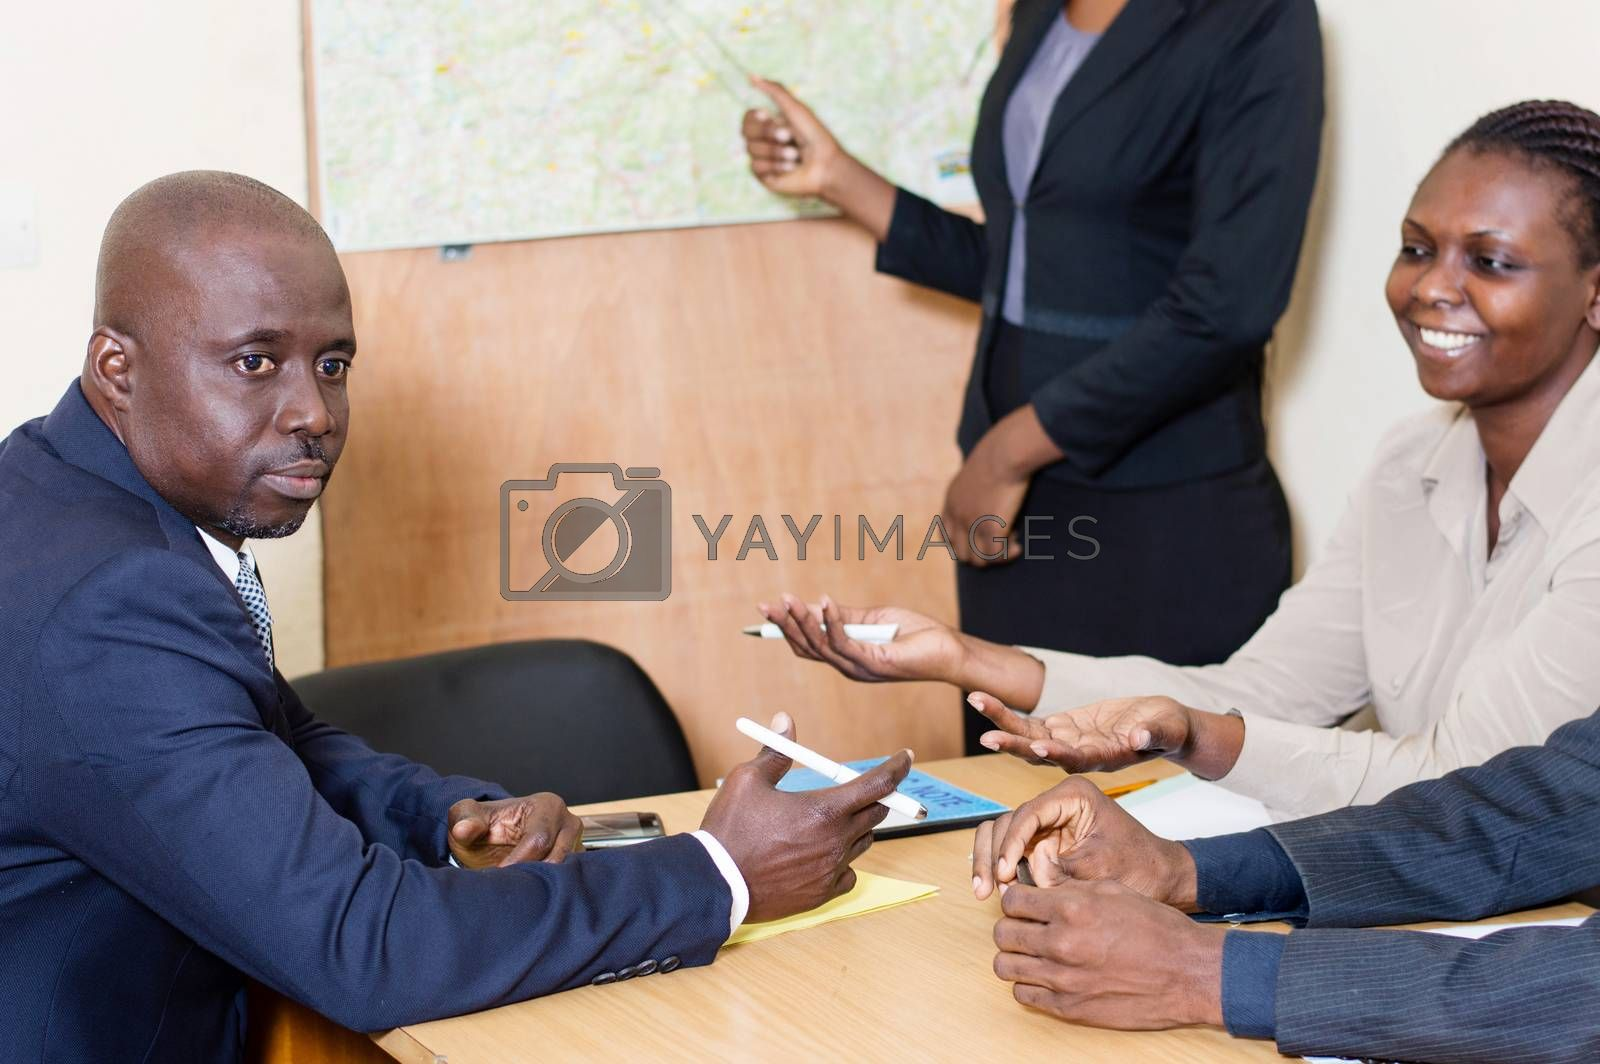 Businesswoman making a presentation at the office during a job interview.